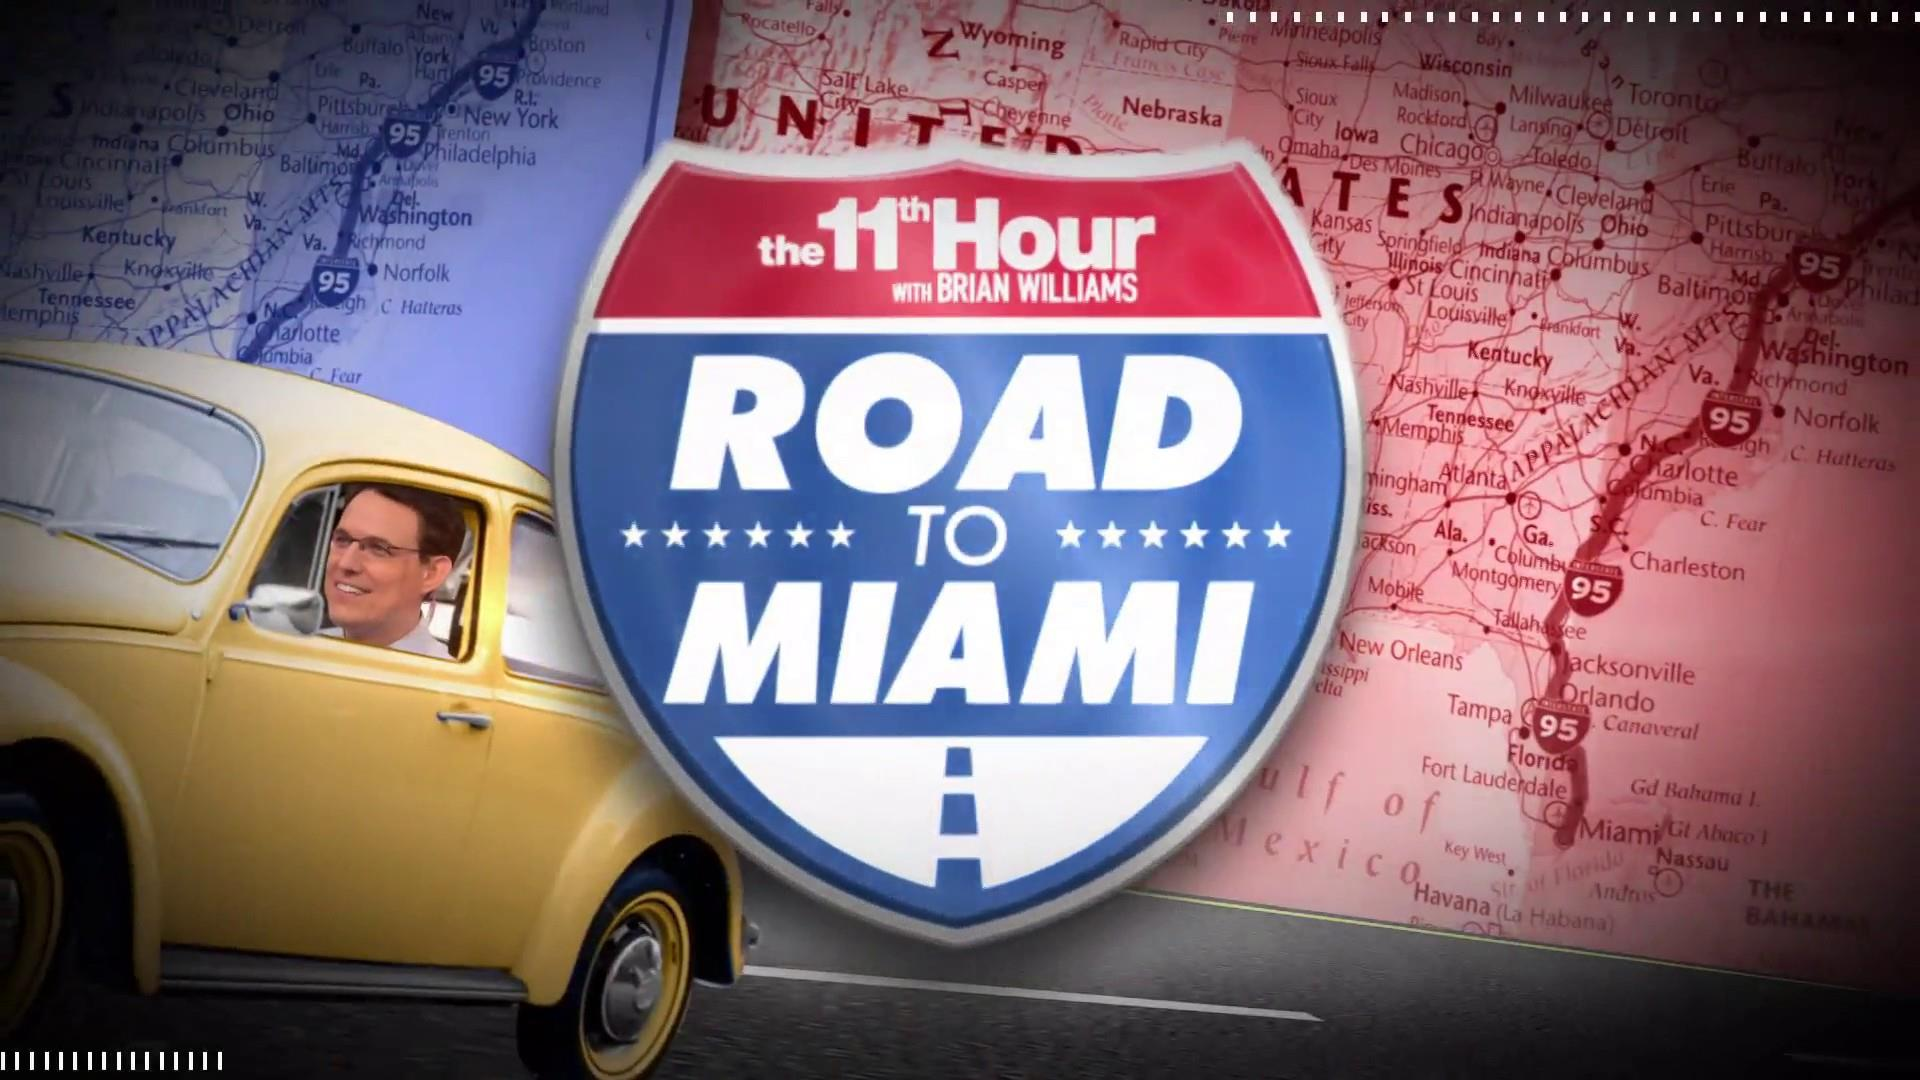 Road to Miami: Steve Kornacki on what you need to know about Rhode Island before 2020